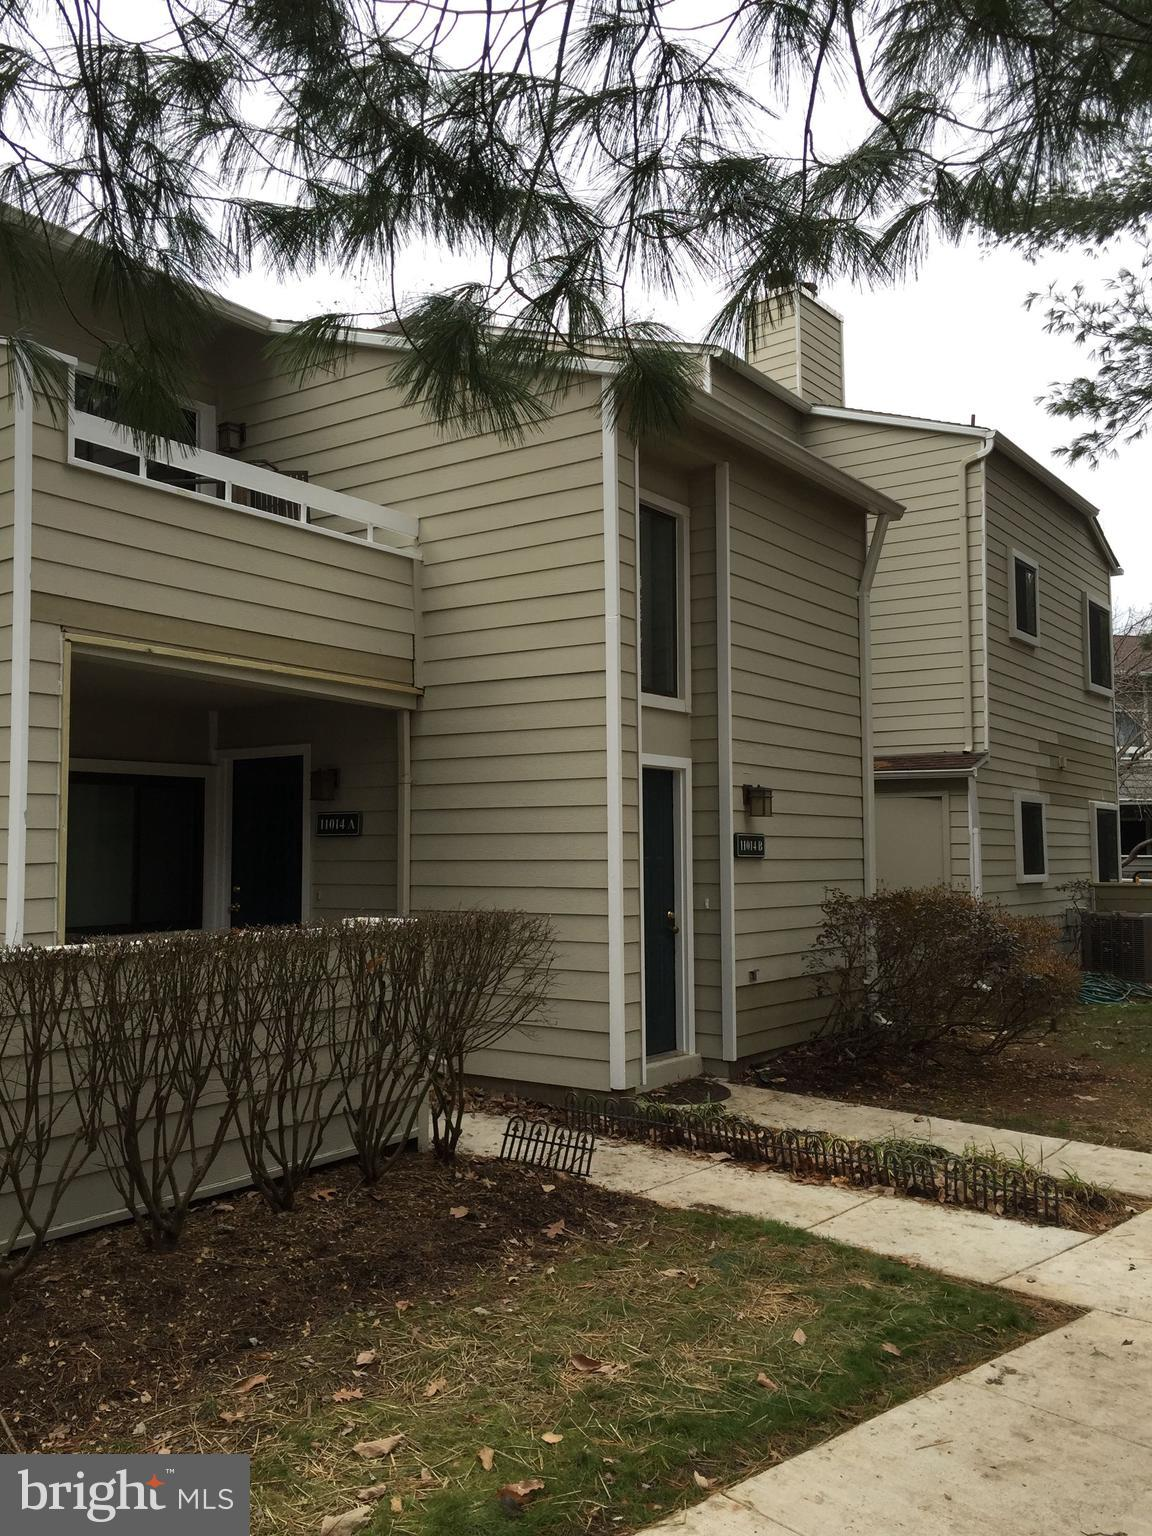 Lovely Spacious Condo with Lots of Light and Personality. The Deck is off the Dining Area. Walk to S